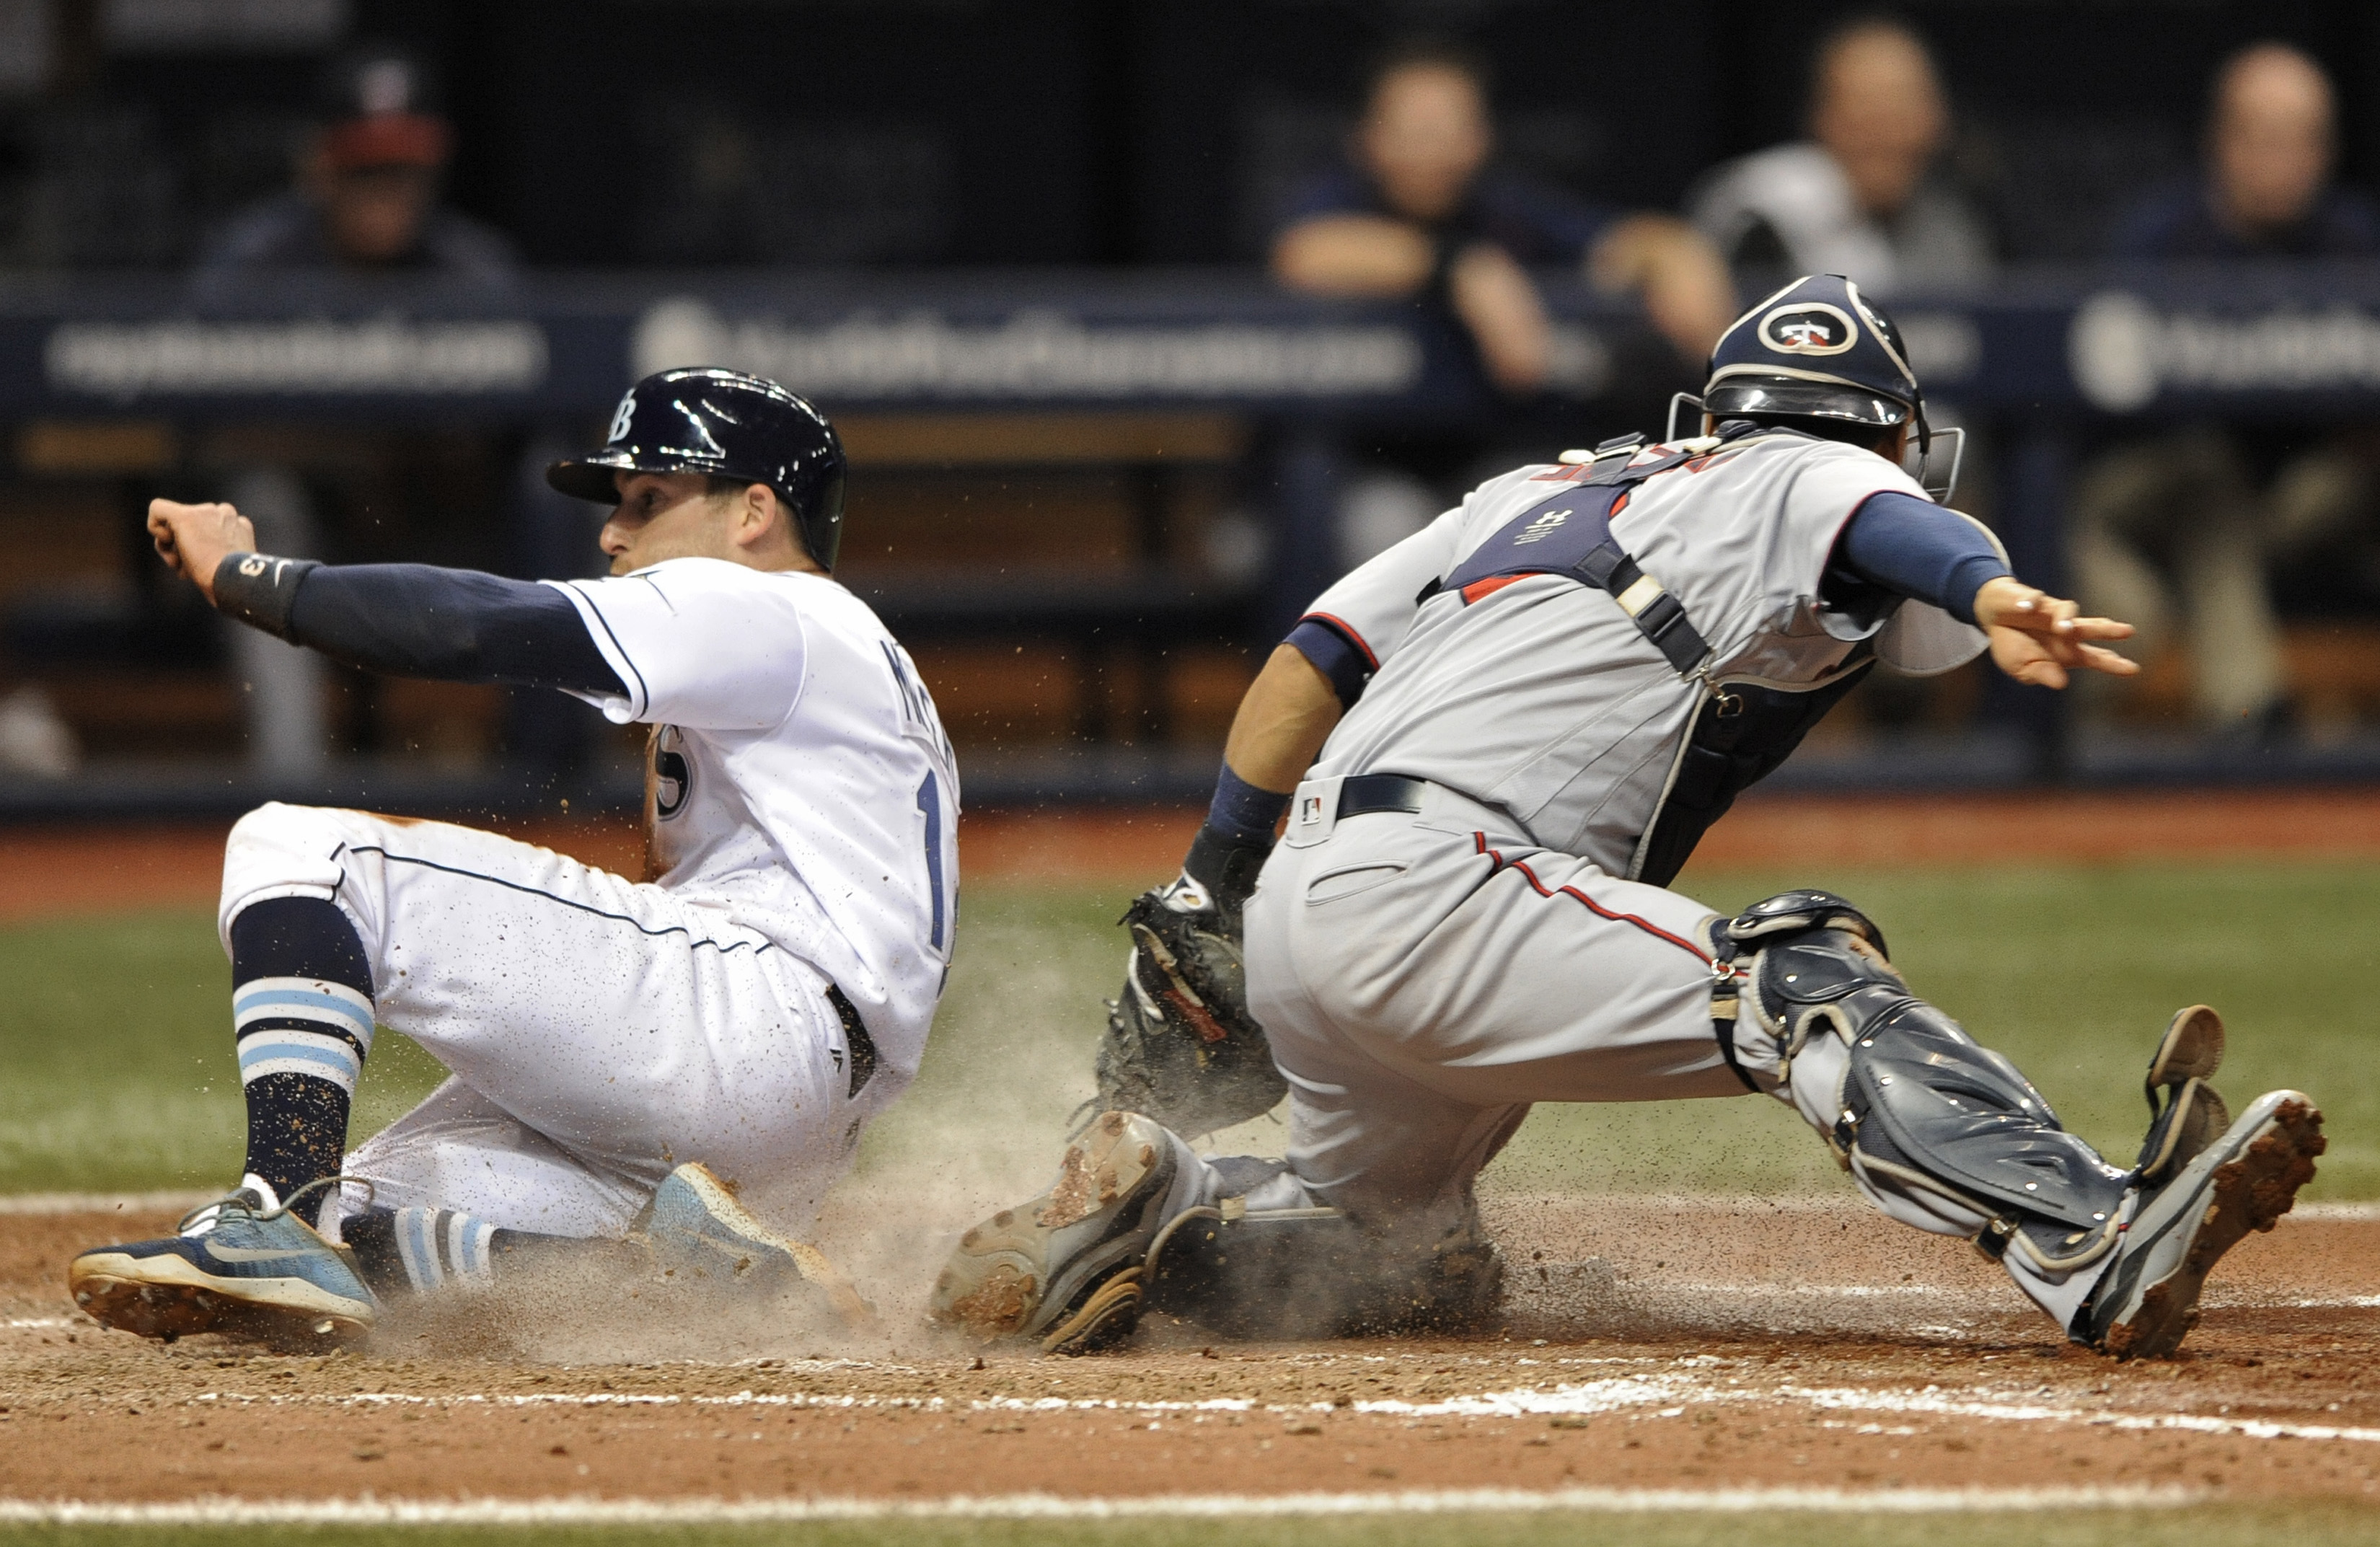 Tampa Bay Rays' Brad Miller, left, beats the tag from Minnesota Twins catcher Kurt Suzuki, right, to score on Nick Franklin's fielder's choice to shortstop during the sixth inning of a baseball game Saturday, Aug. 6, 2016, in St. Petersburg, Fla. (AP Phot